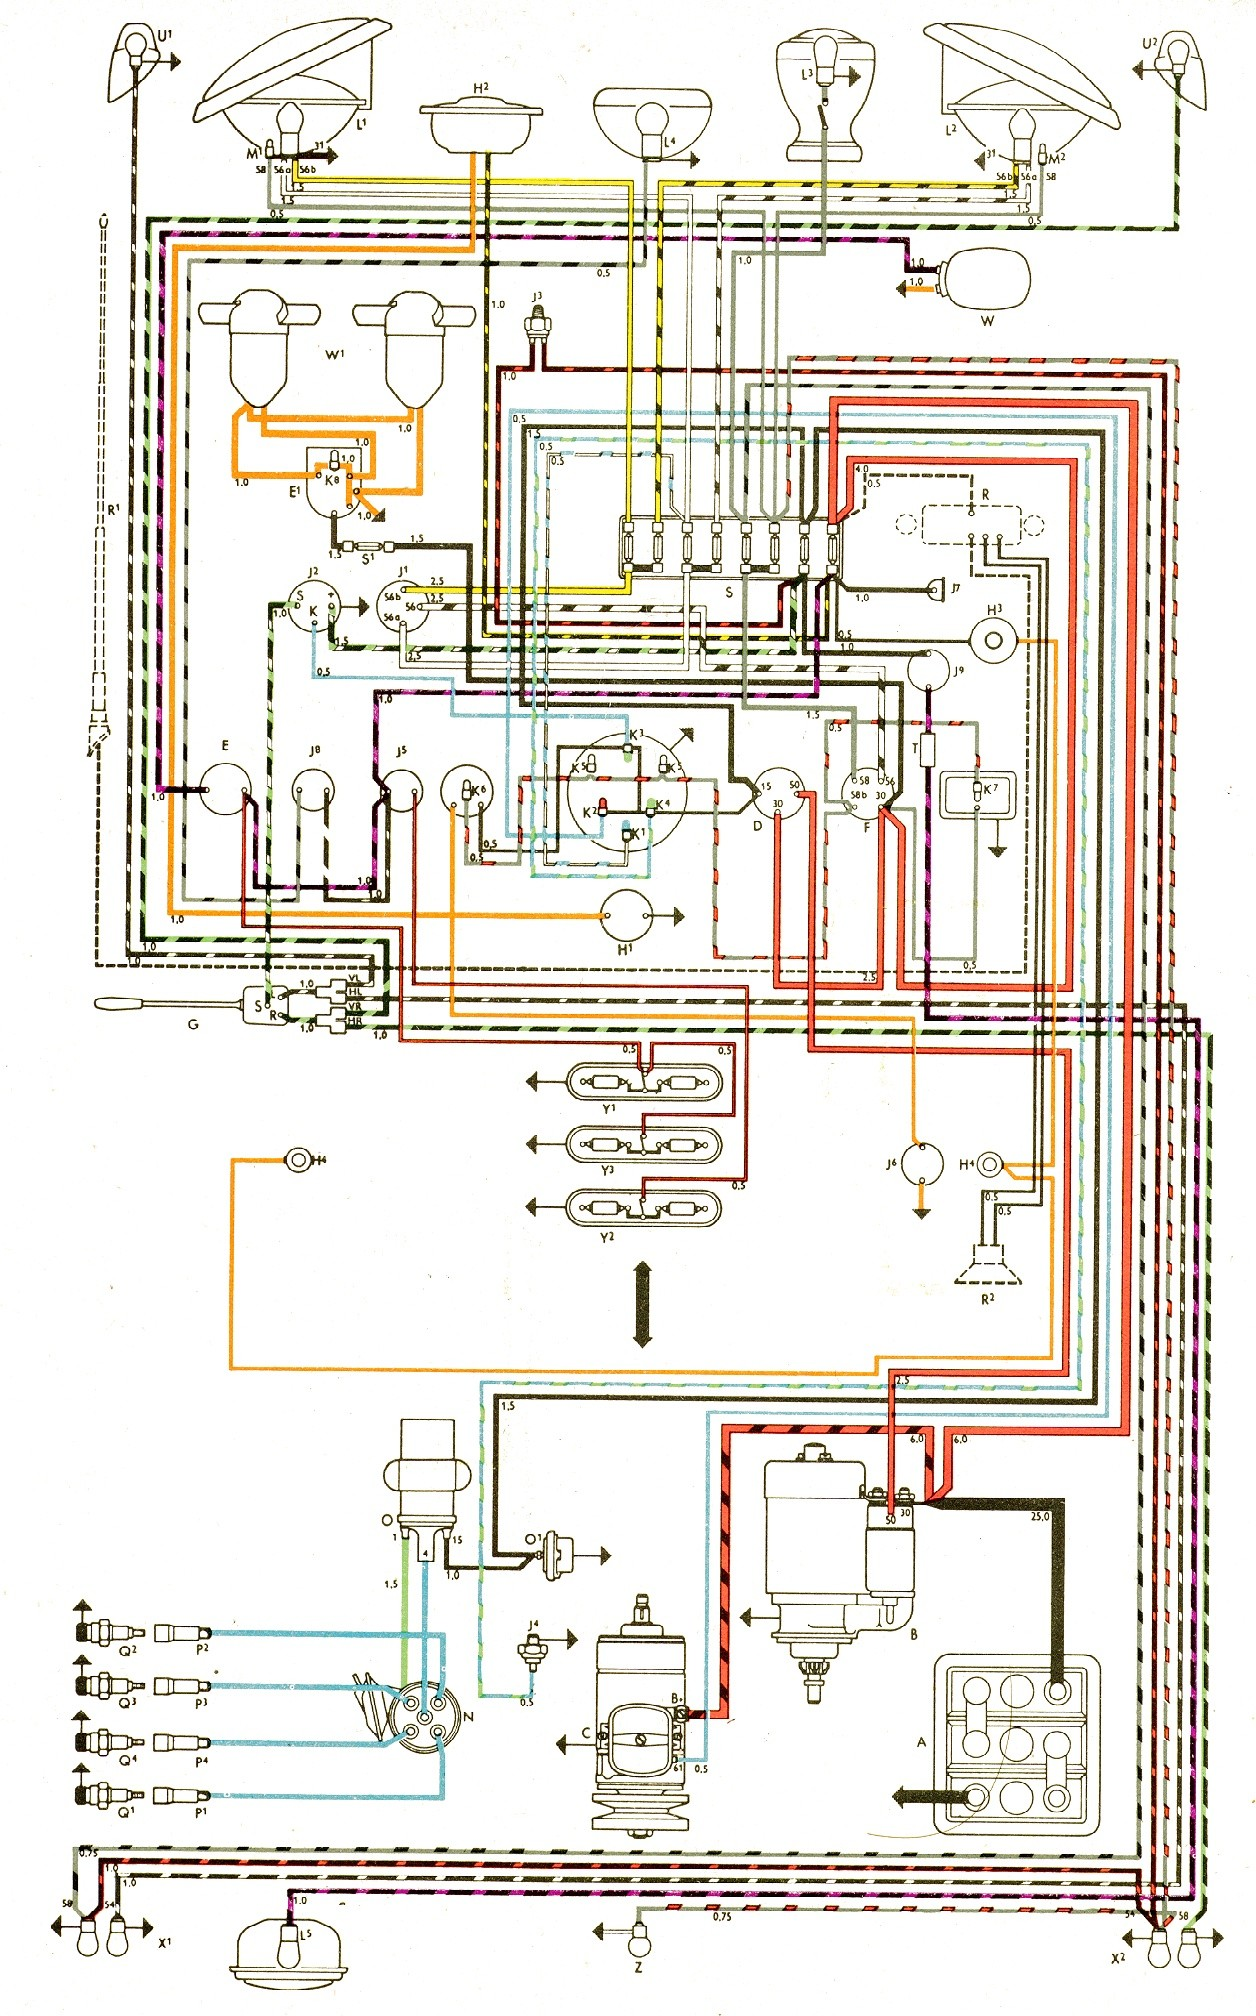 Bus Engine Diagram Vintagebus Vw Bus and Other Wiring Diagrams